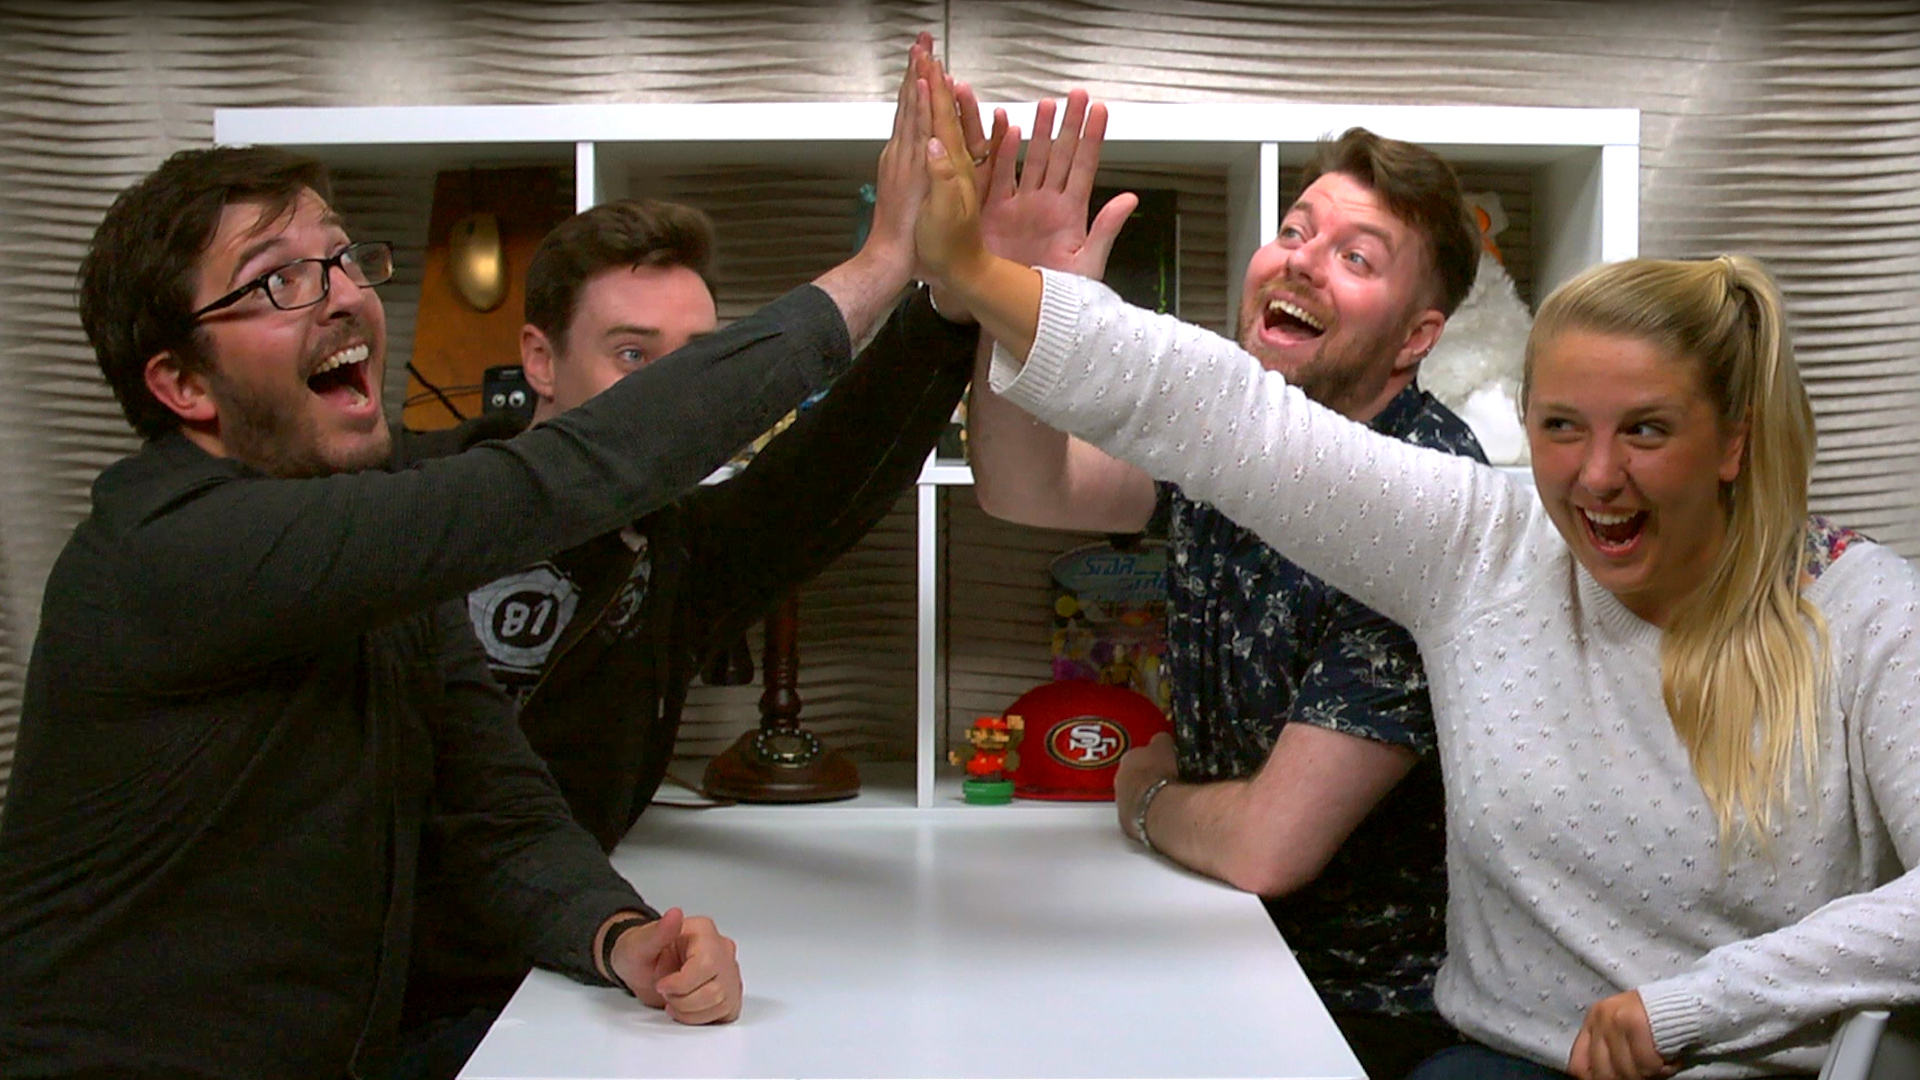 Video: 10 years, 500 episodes: Happy birthday to the CNET UK podcast!